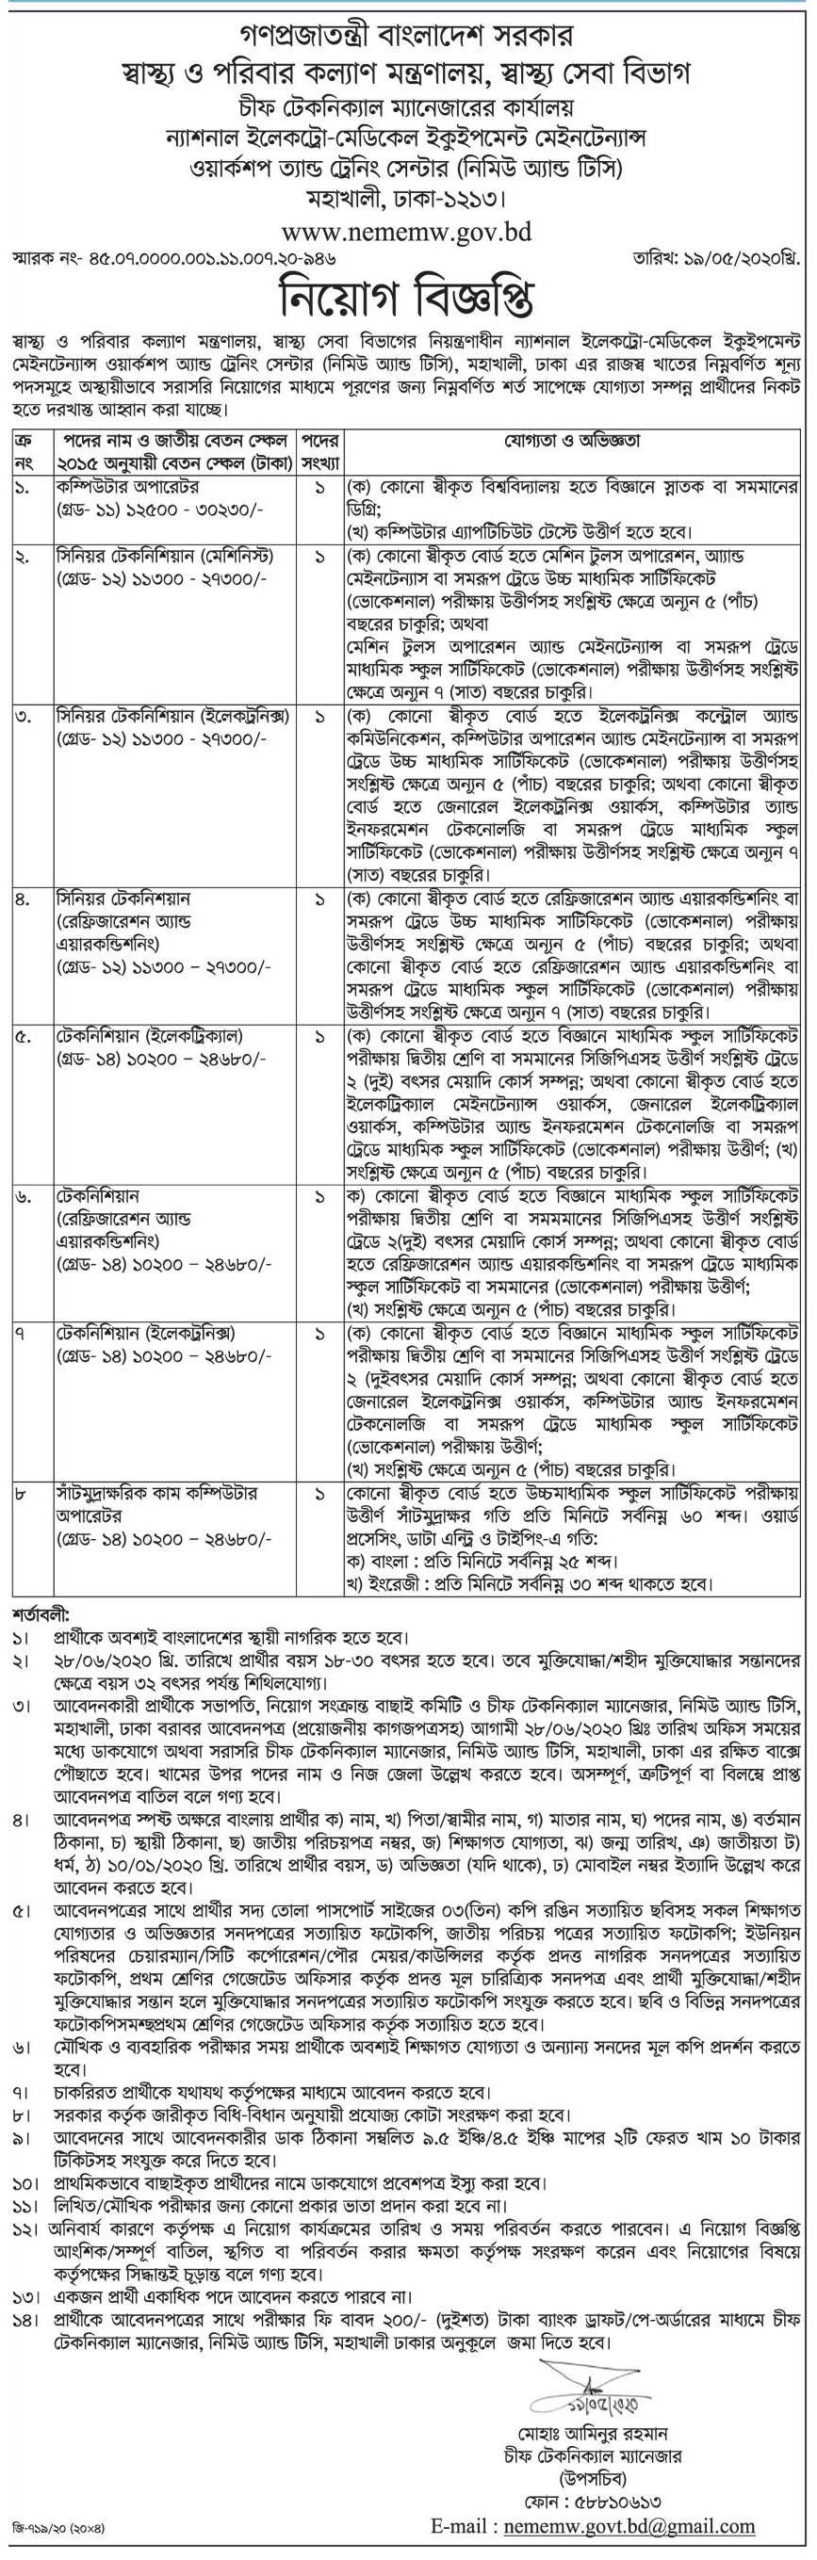 Ministry Of Health And Family Welfare MOHFW Job Circular 2020